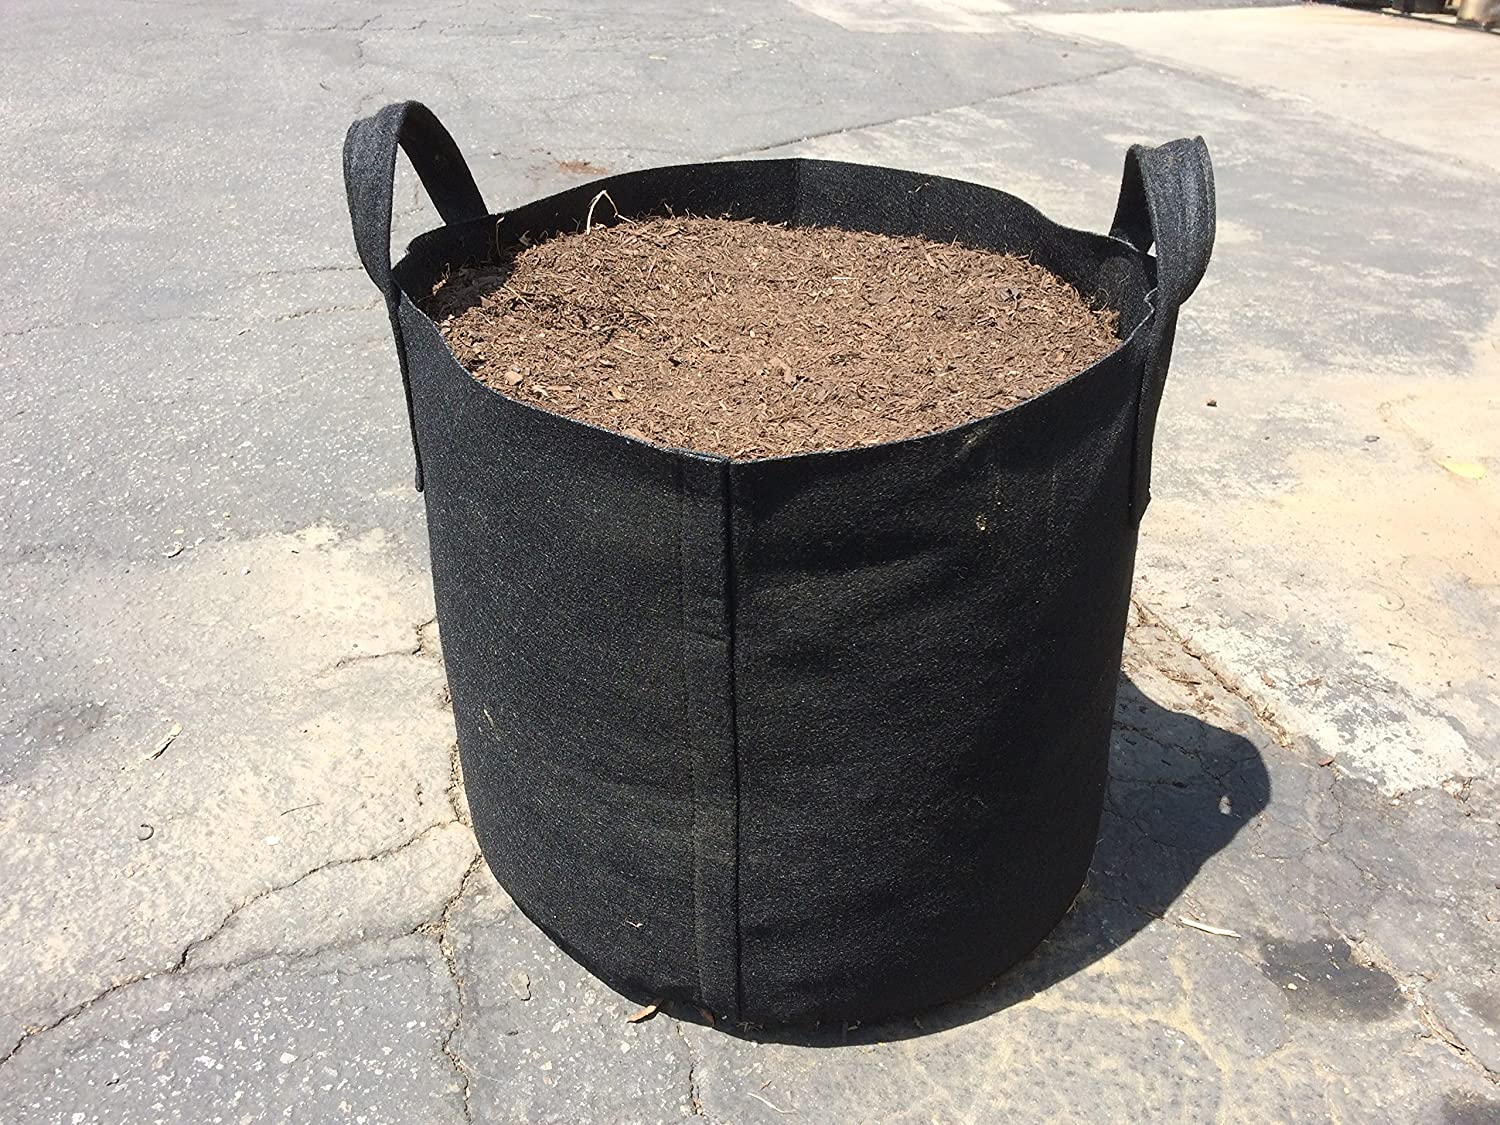 10 Gallon Grow Bags w/Handles (Black) for grow cabbage in pots